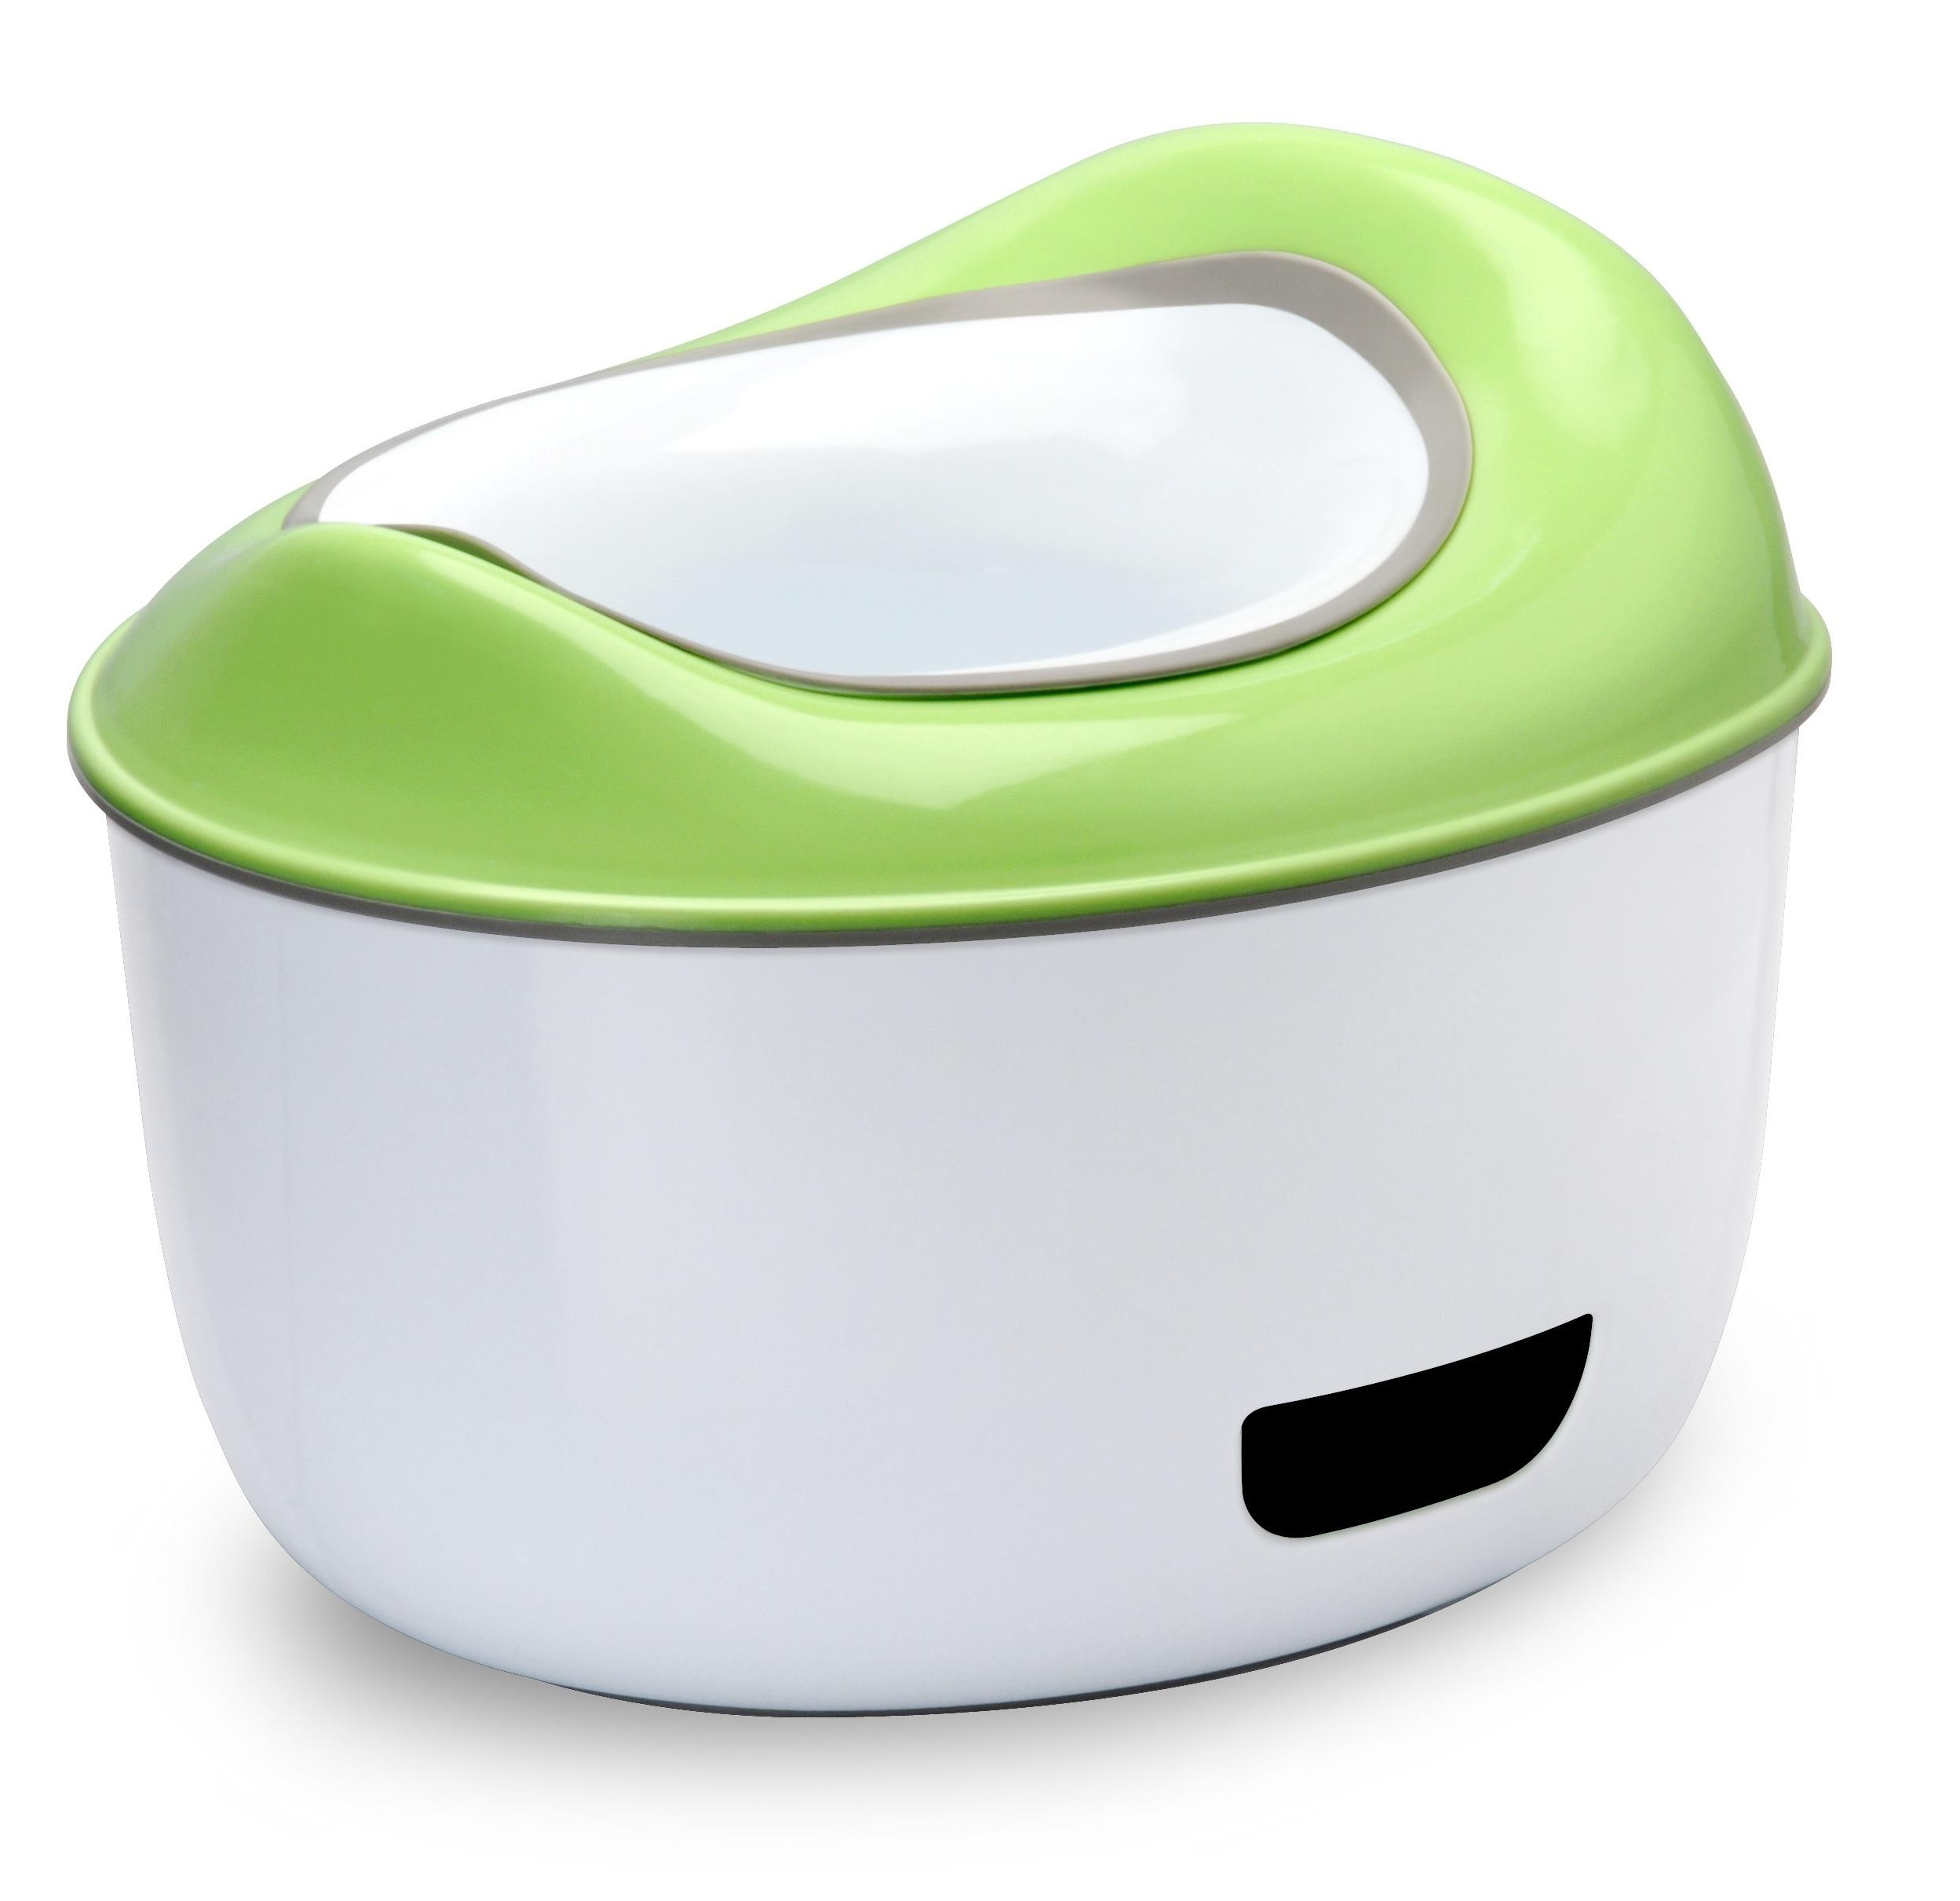 3-in-1 Potty Lime